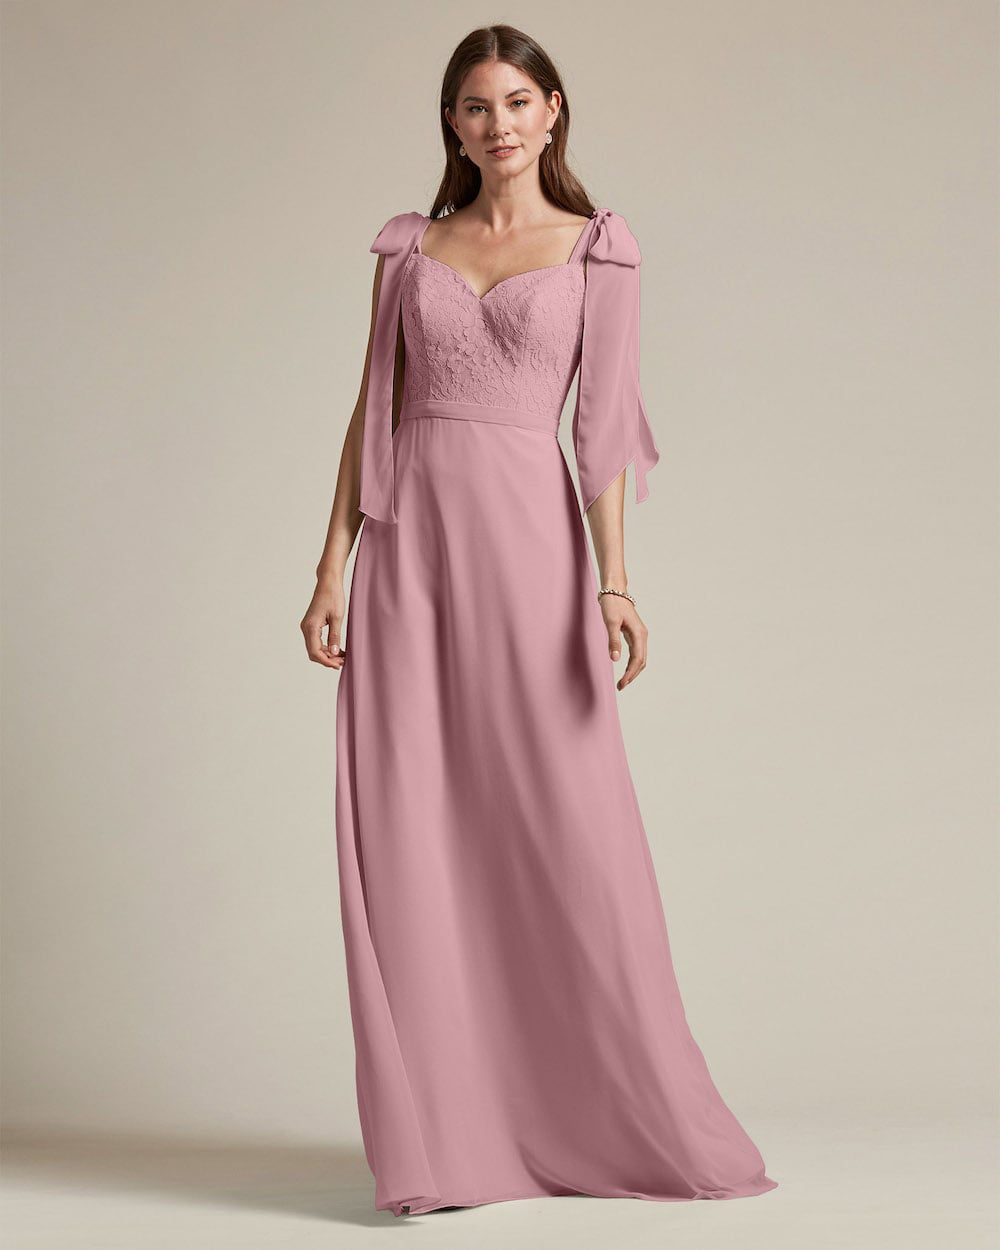 Ribbon Detail Shoulder With Embroidered Top Maid of Honor Dress - Front